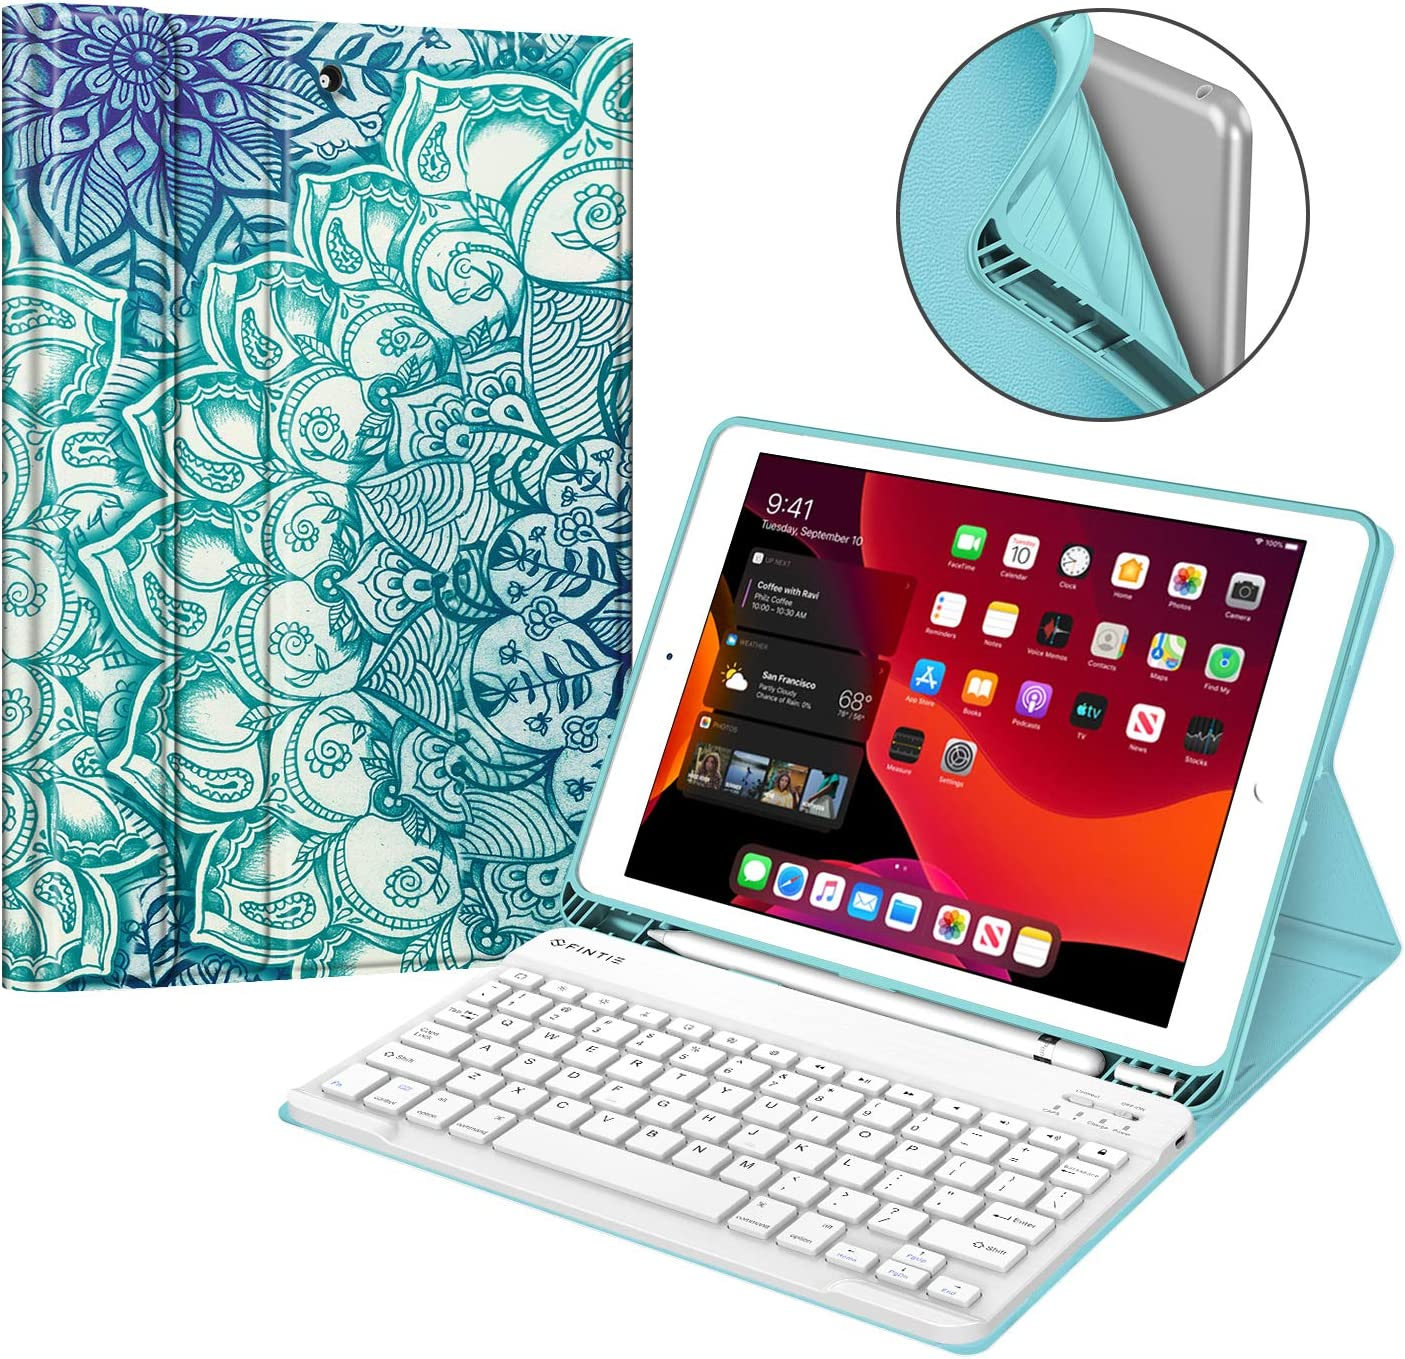 Fintie Keyboard Case for New iPad 7th Generation 10.2 Inch 2019, Soft TPU Back Stand Cover with Built-in Pencil Holder, Magnetically Detachable Wireless Bluetooth Keyboard, Emerald Illusions